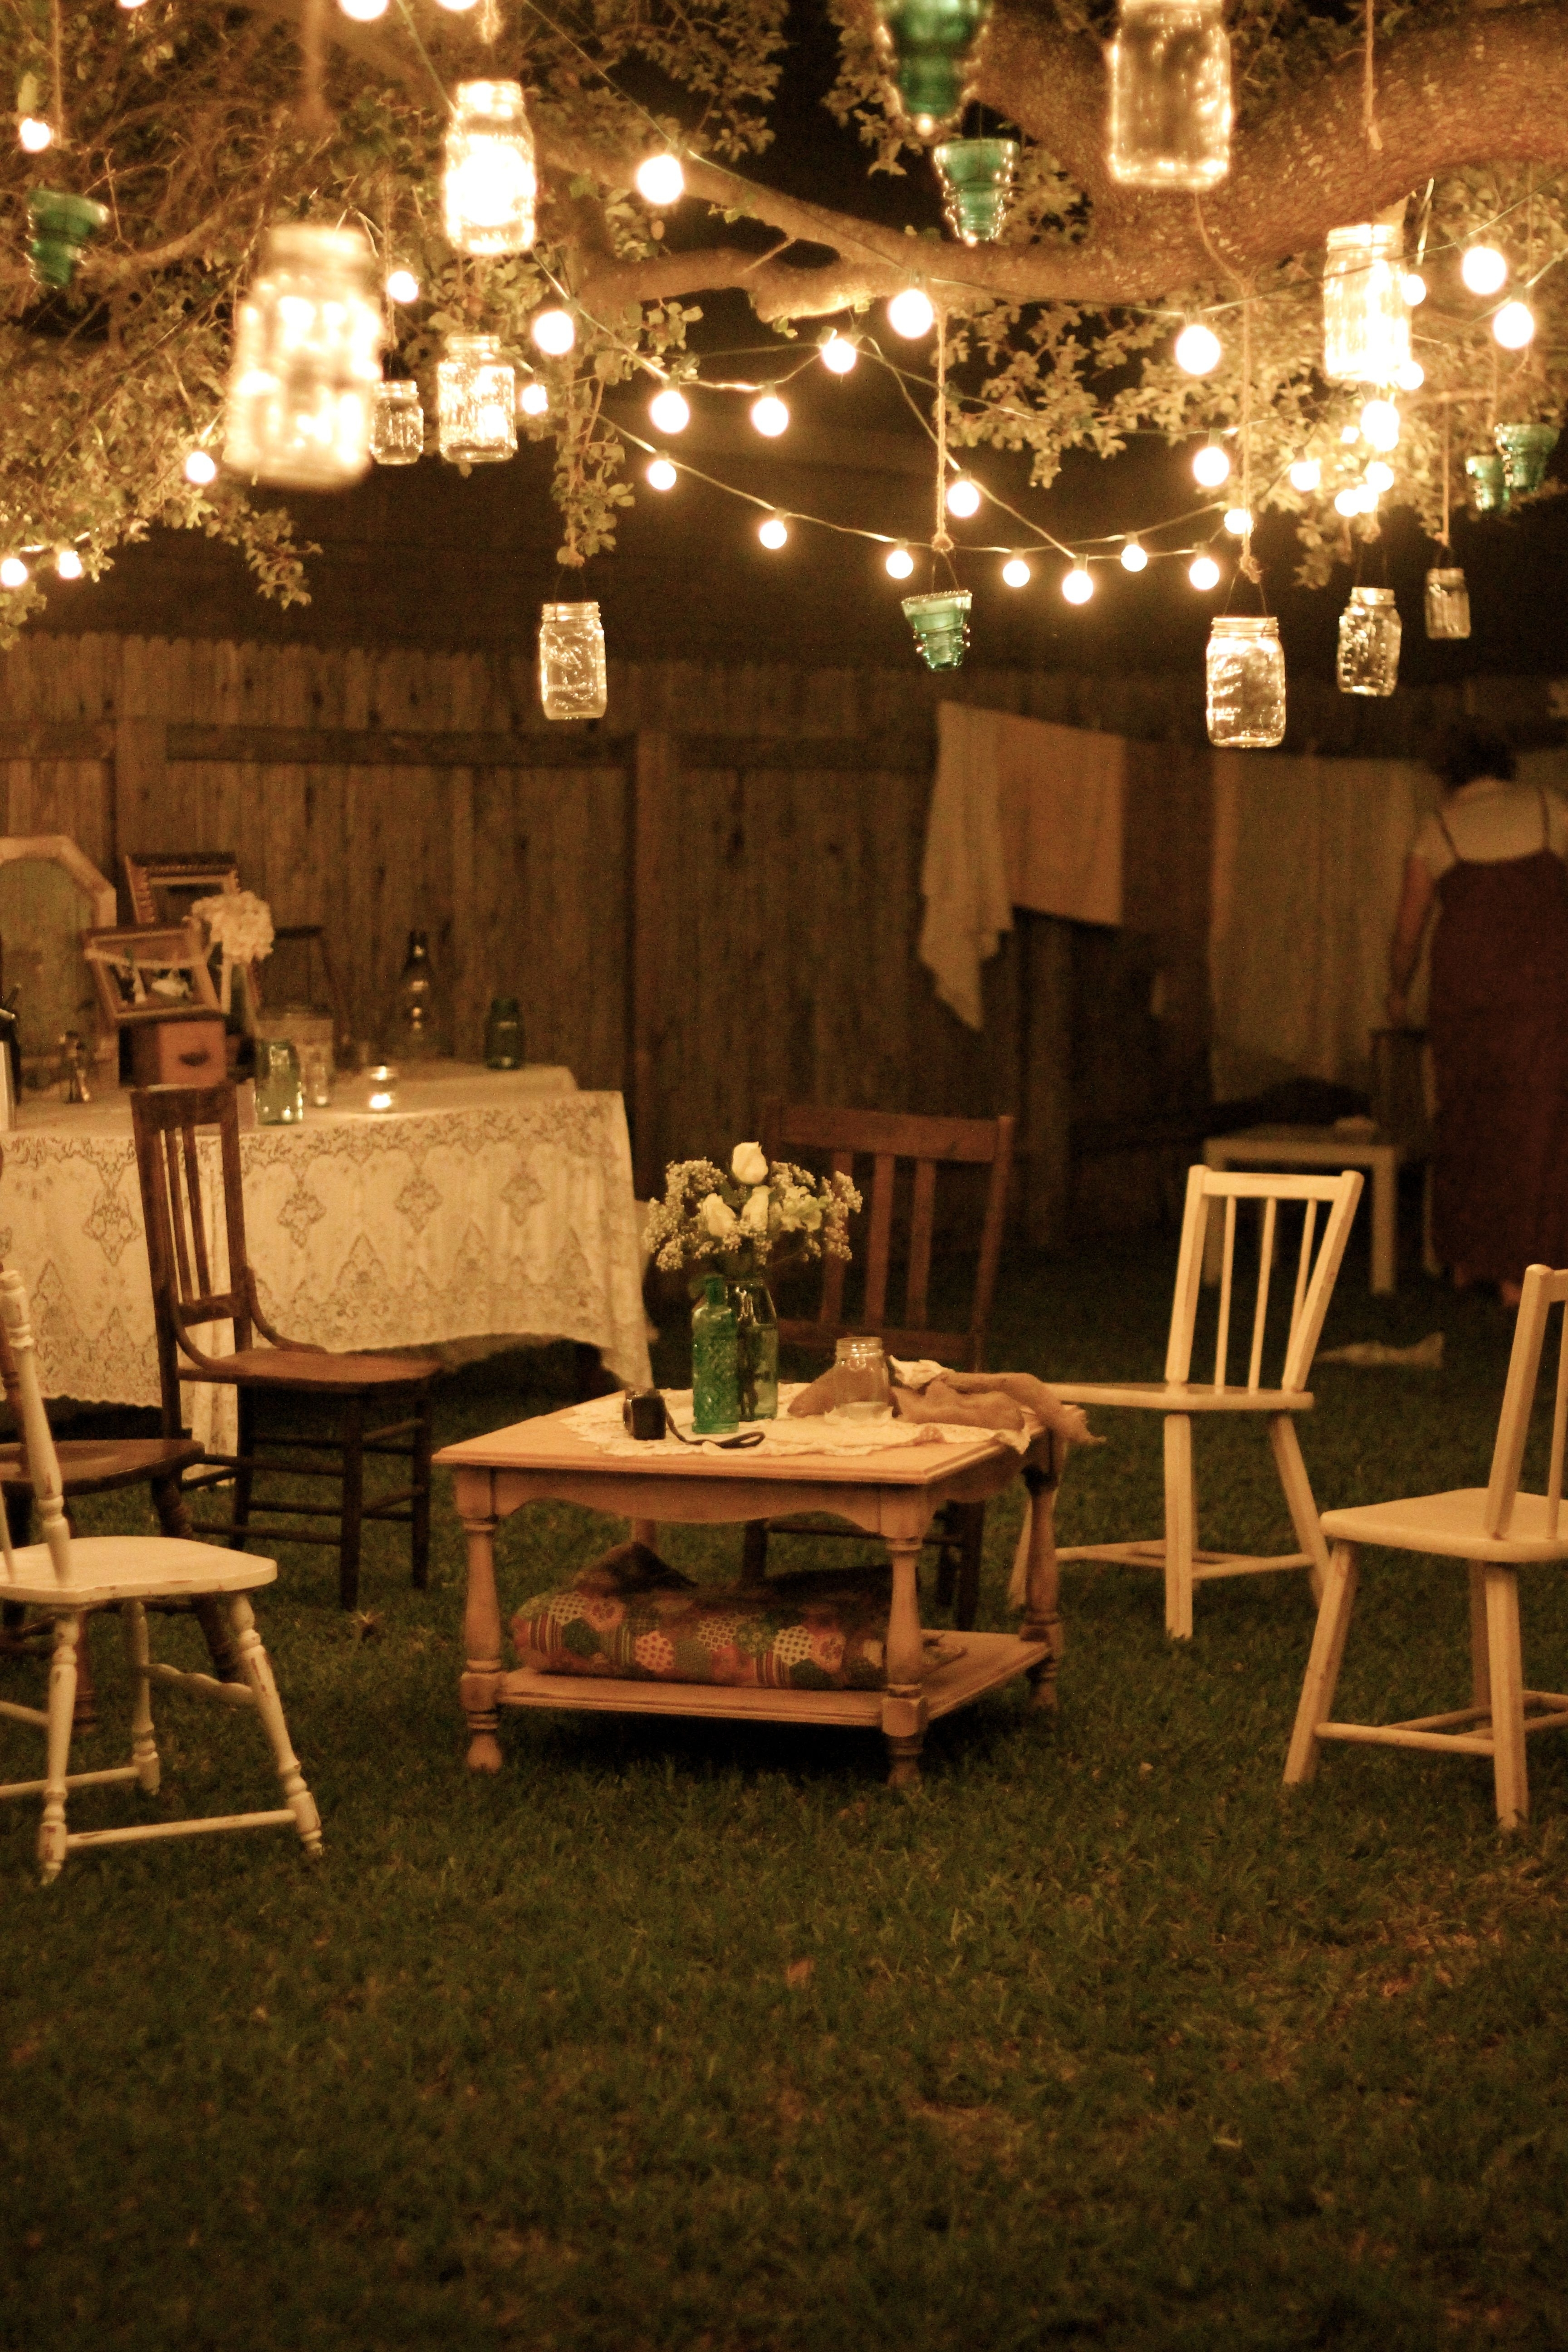 Latest Outdoor Hanging Japanese Lanterns Throughout Garden Party At Night; Lanterns Hang From Tree Branches, And Rustic (Gallery 12 of 20)